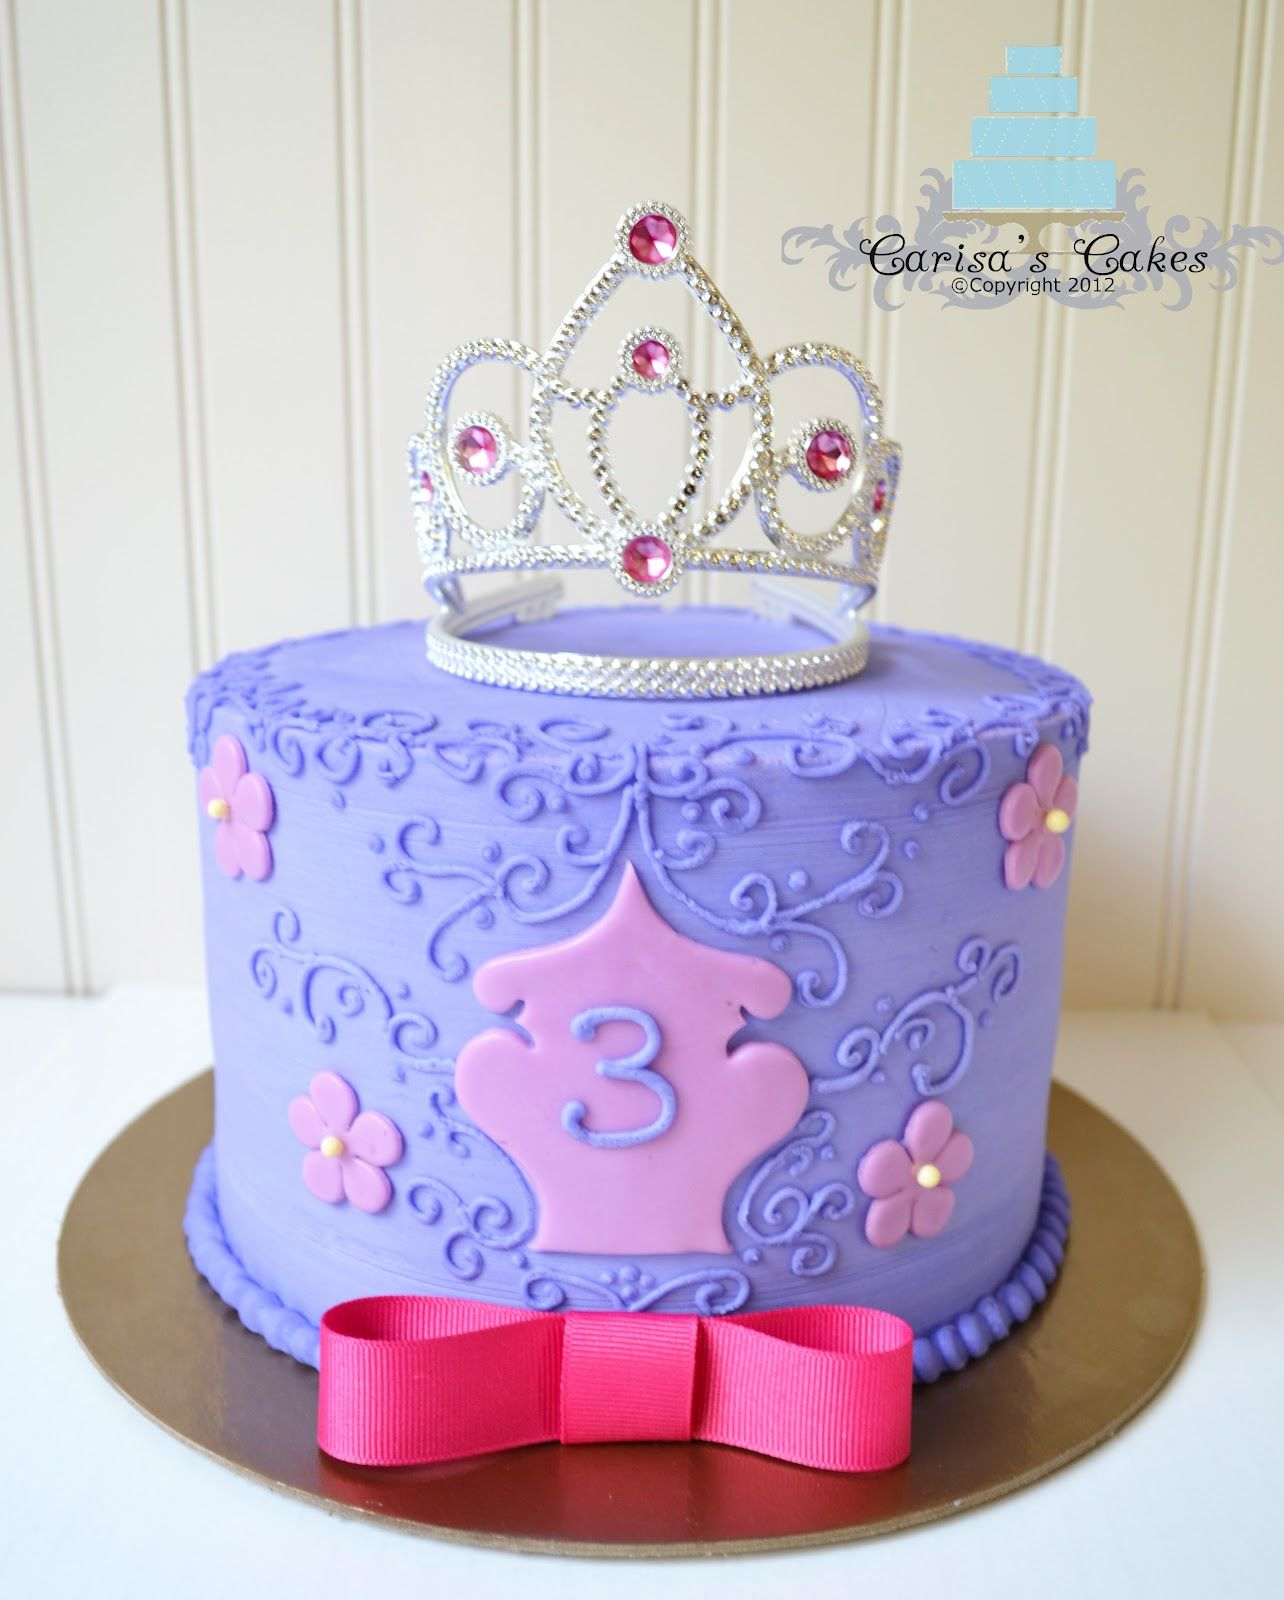 Carisa's Cakes: Princess Themed Cake